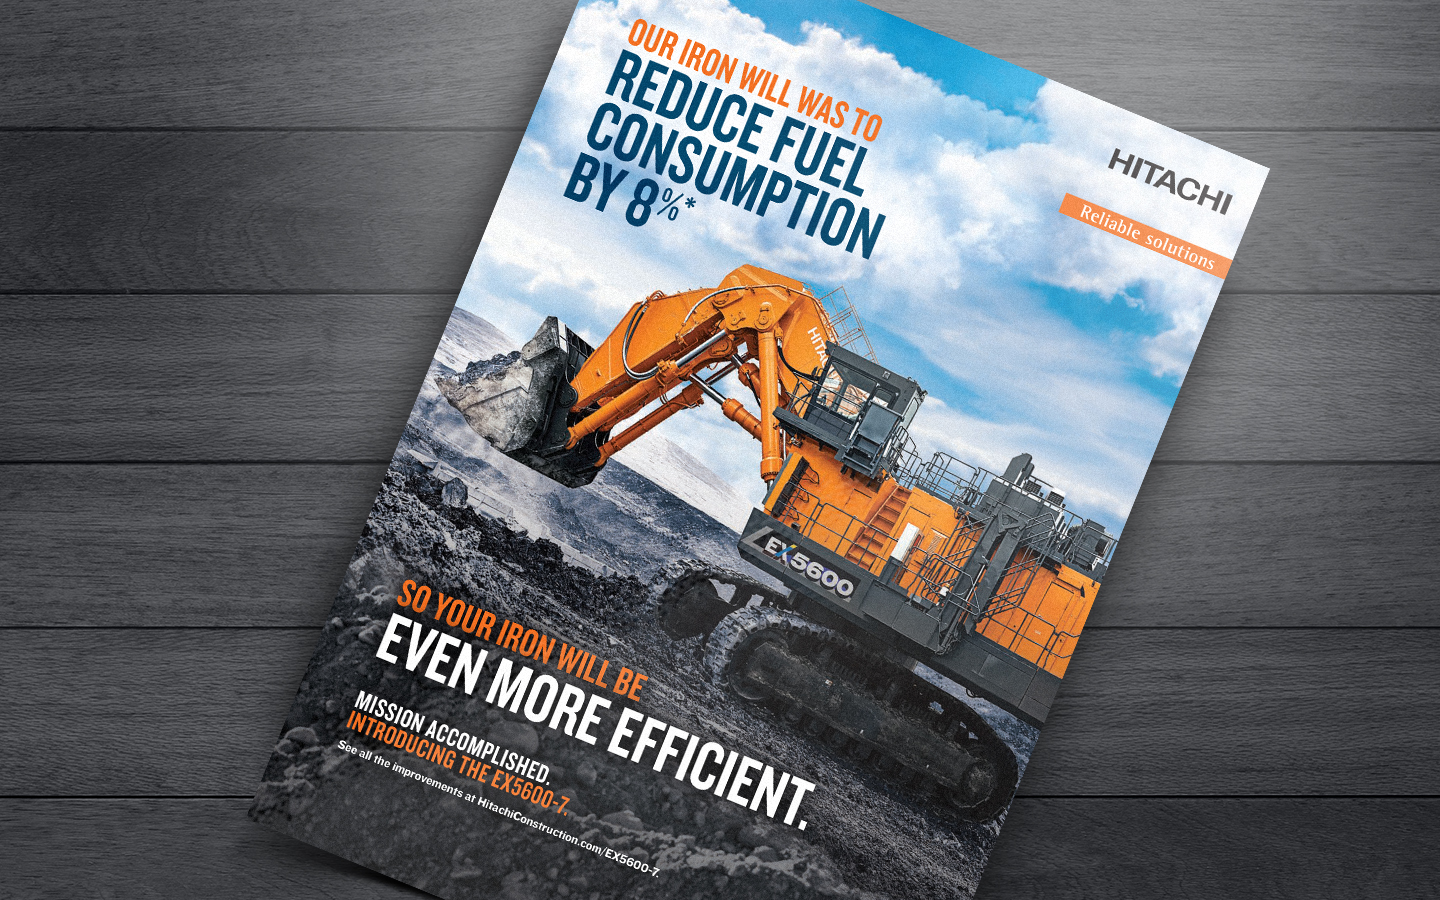 "print ad showing Hitachi mining excavator and text saying ""Our iron will was to reduce fuel consumption by 8%"""